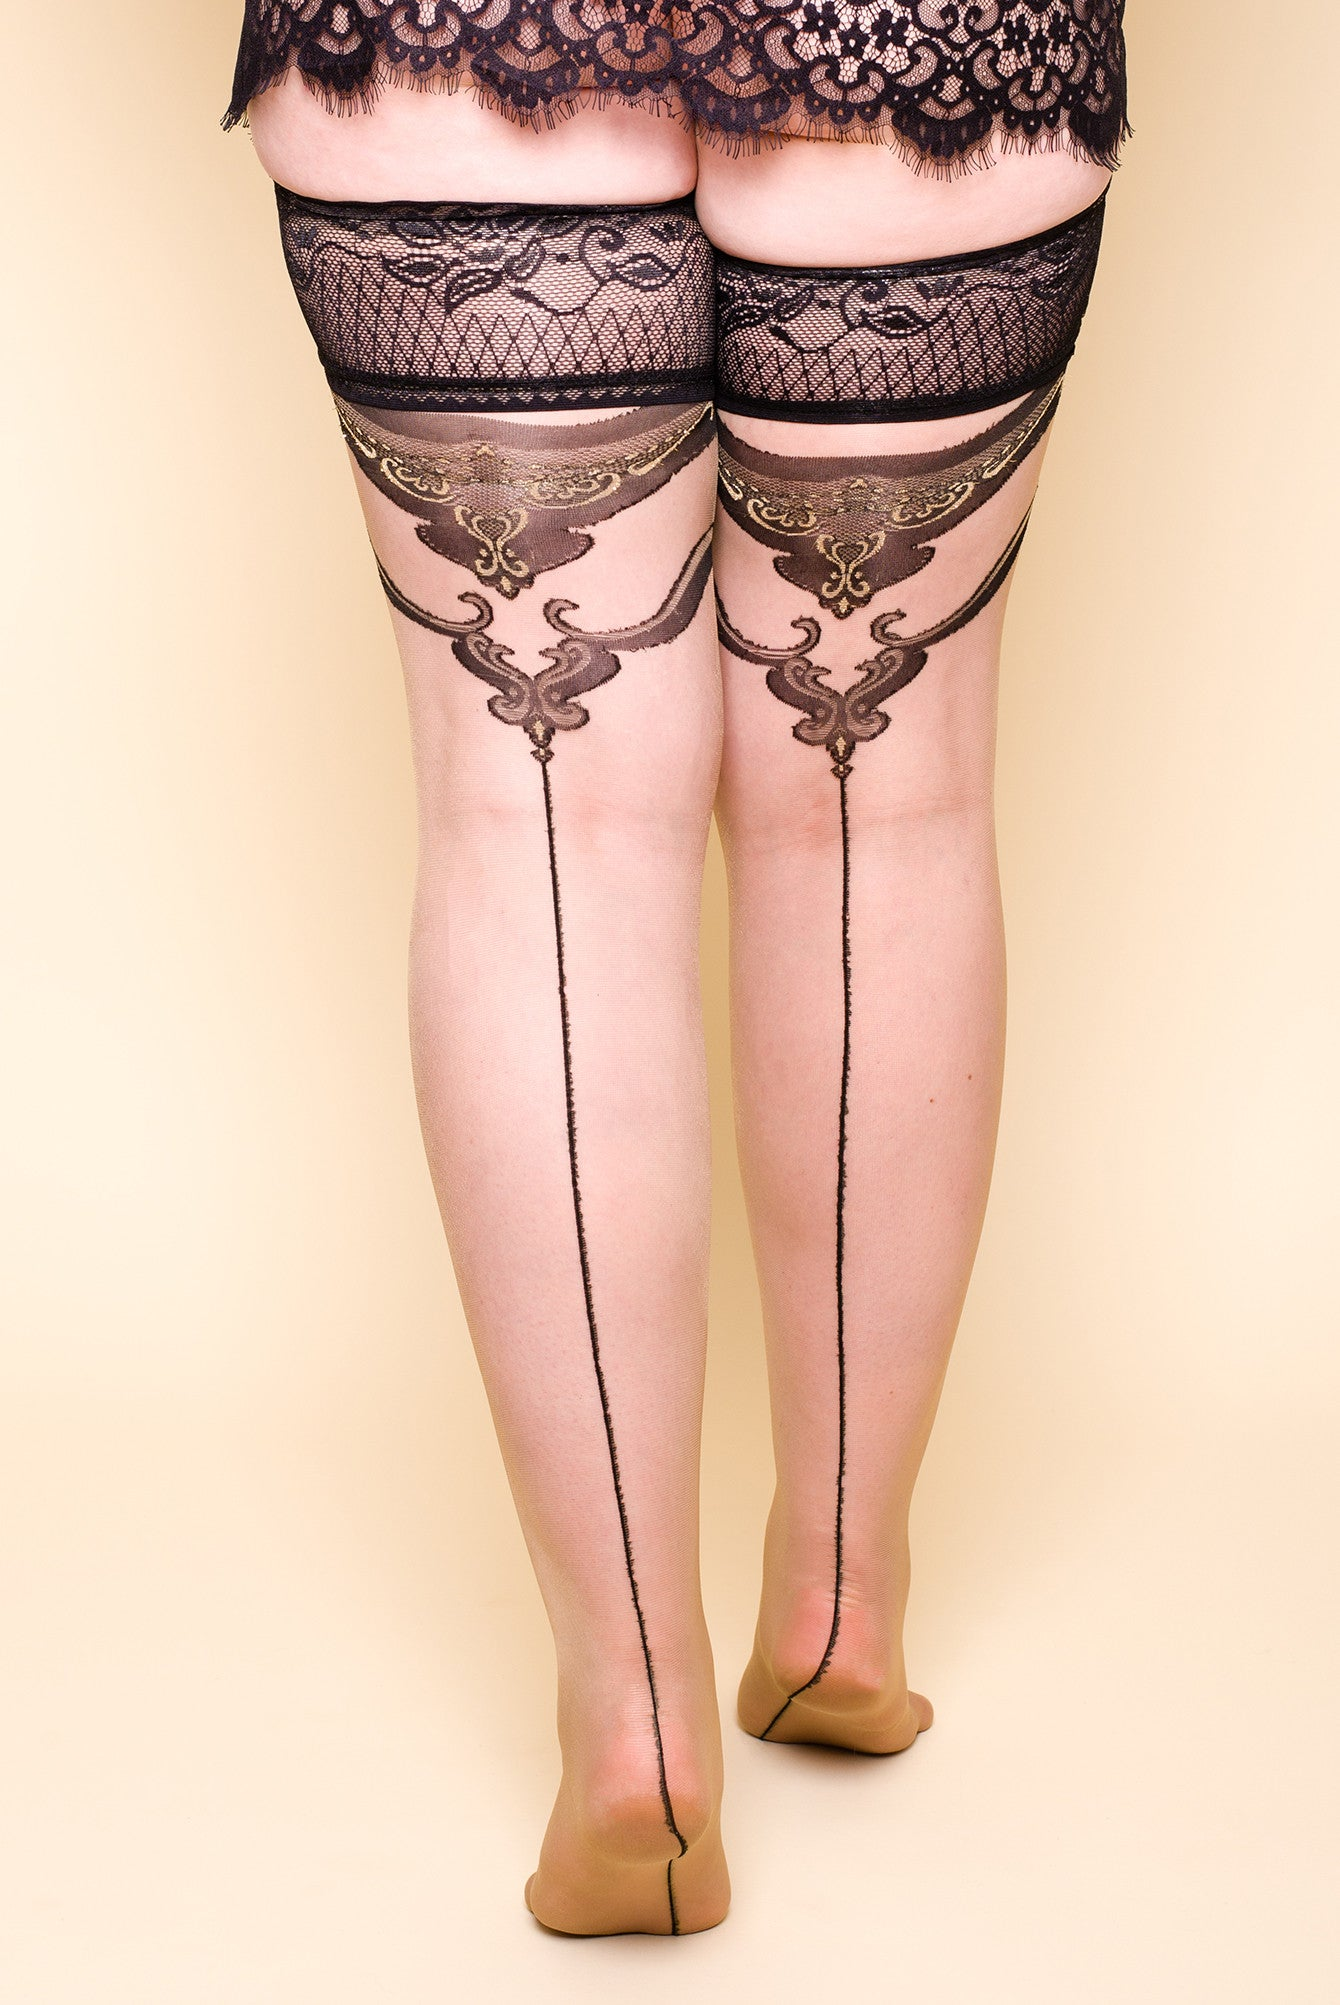 ITALIAN PINSTRIPE LACE CELIA HOLD-UPS STOCKINGS